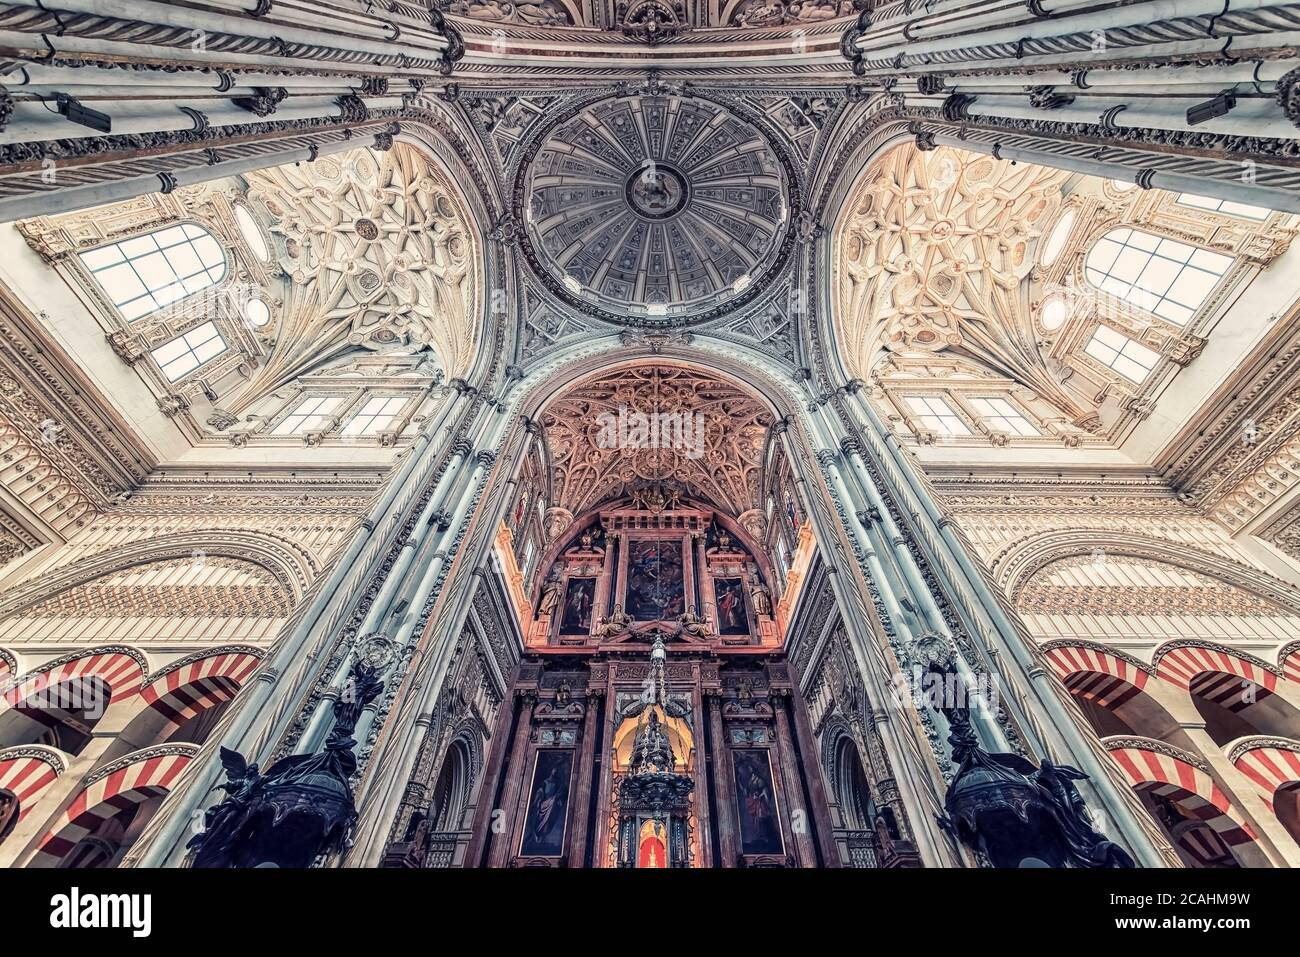 Mosque Cathedral of Cordoba, Andalusia, Spain Stock Photo